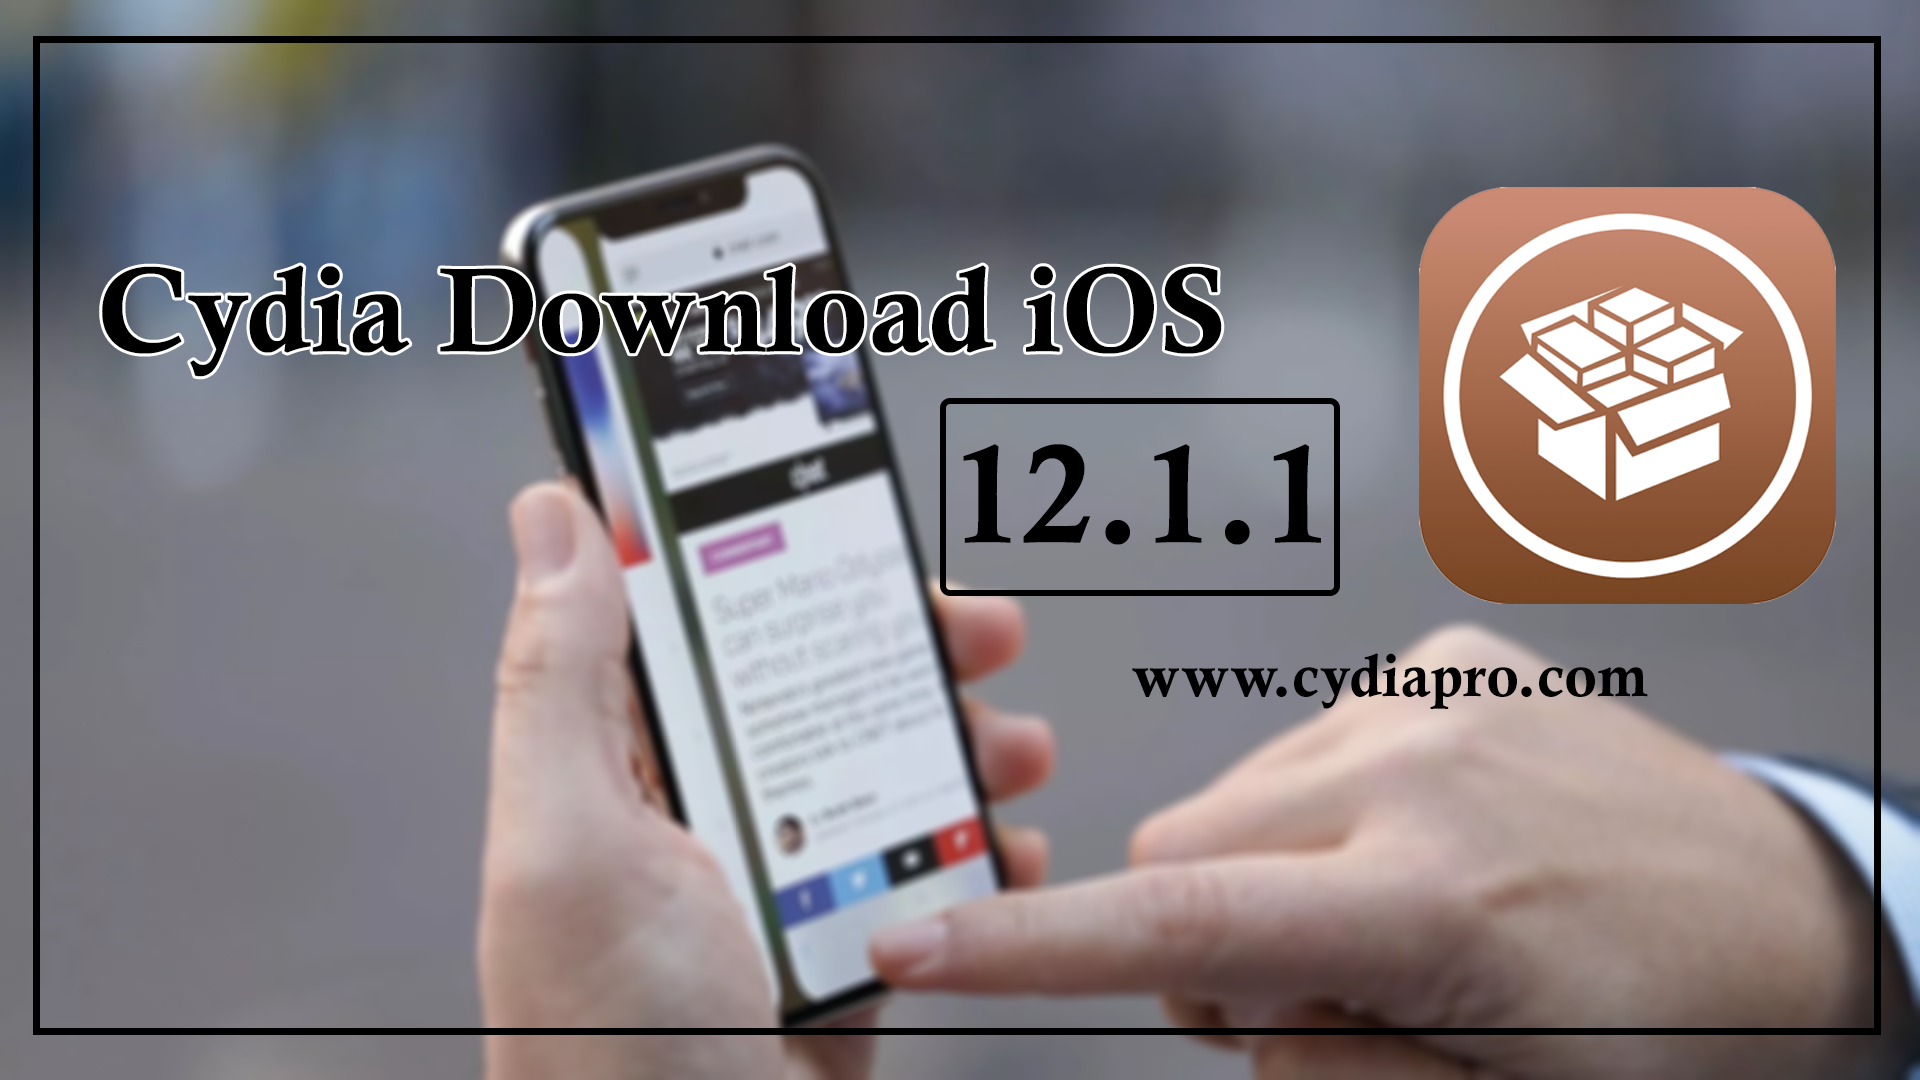 cydia download iOS 12.1.1